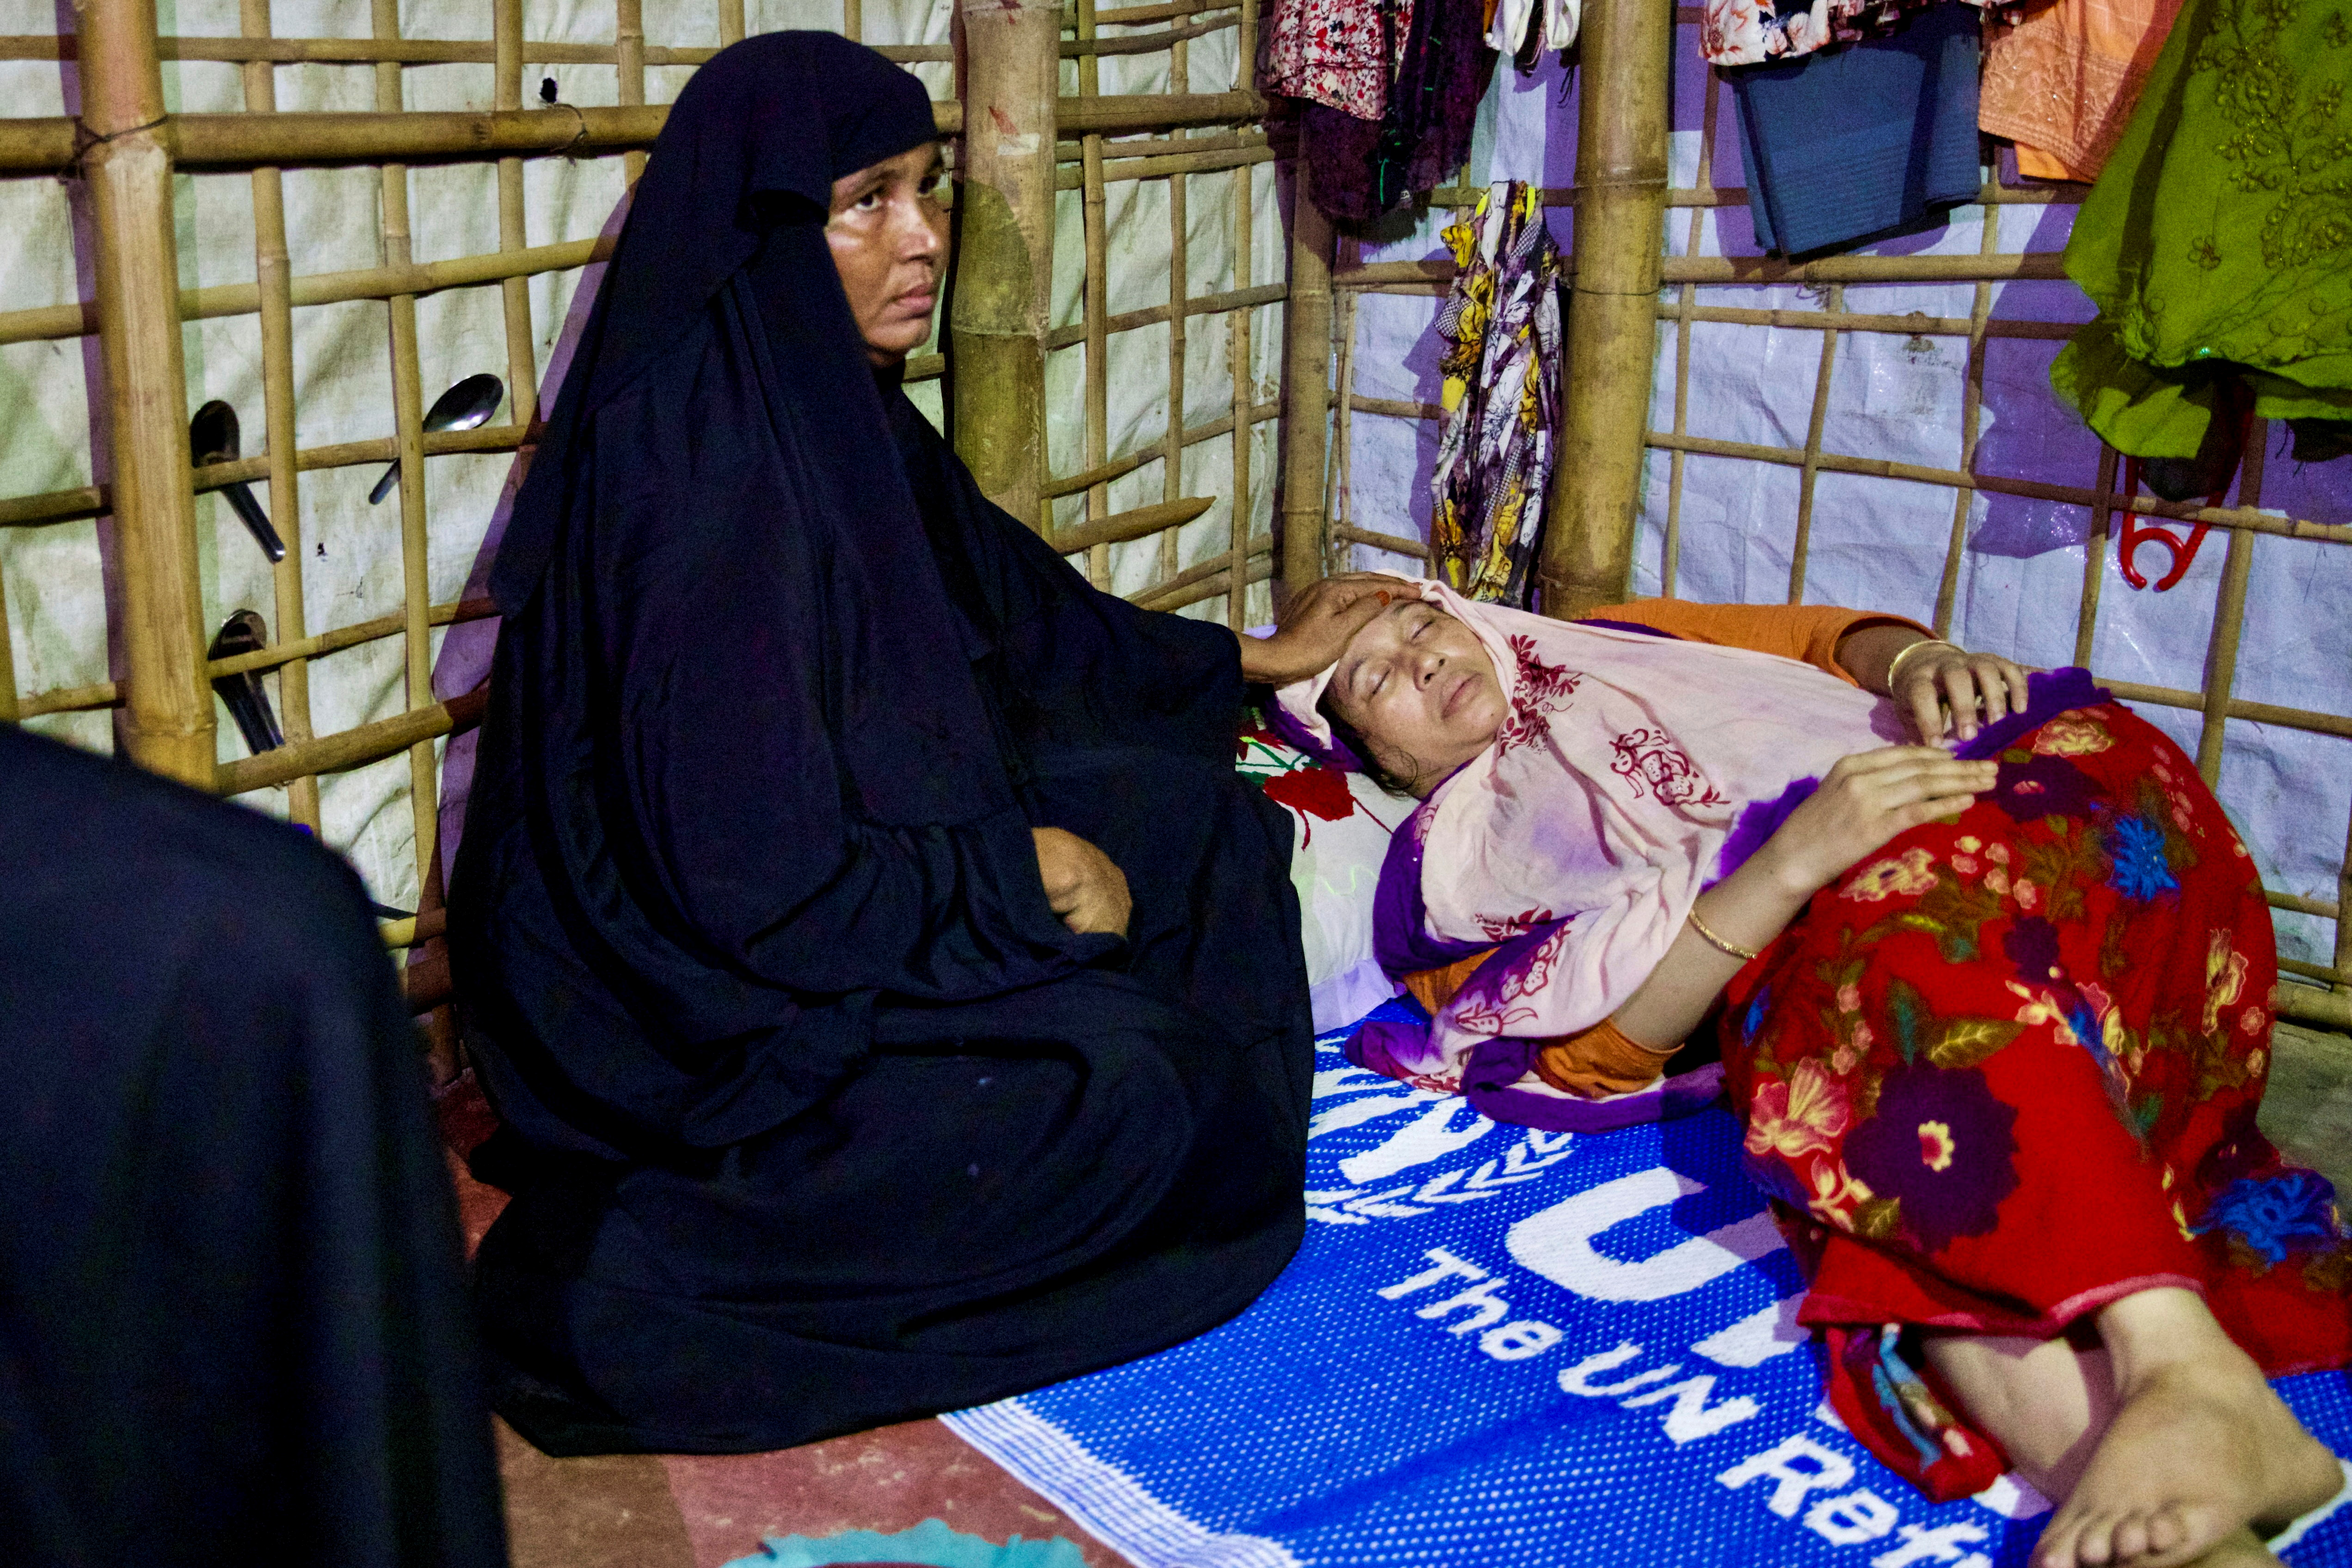 Nasima, the wife of the Rohingya Muslim leader, is surrounded by relatives at her shelter in Kutupalang camp, in Cox's Bazar, Bangladesh, September 30, 2021. REUTERS/Mushfiqul Alam